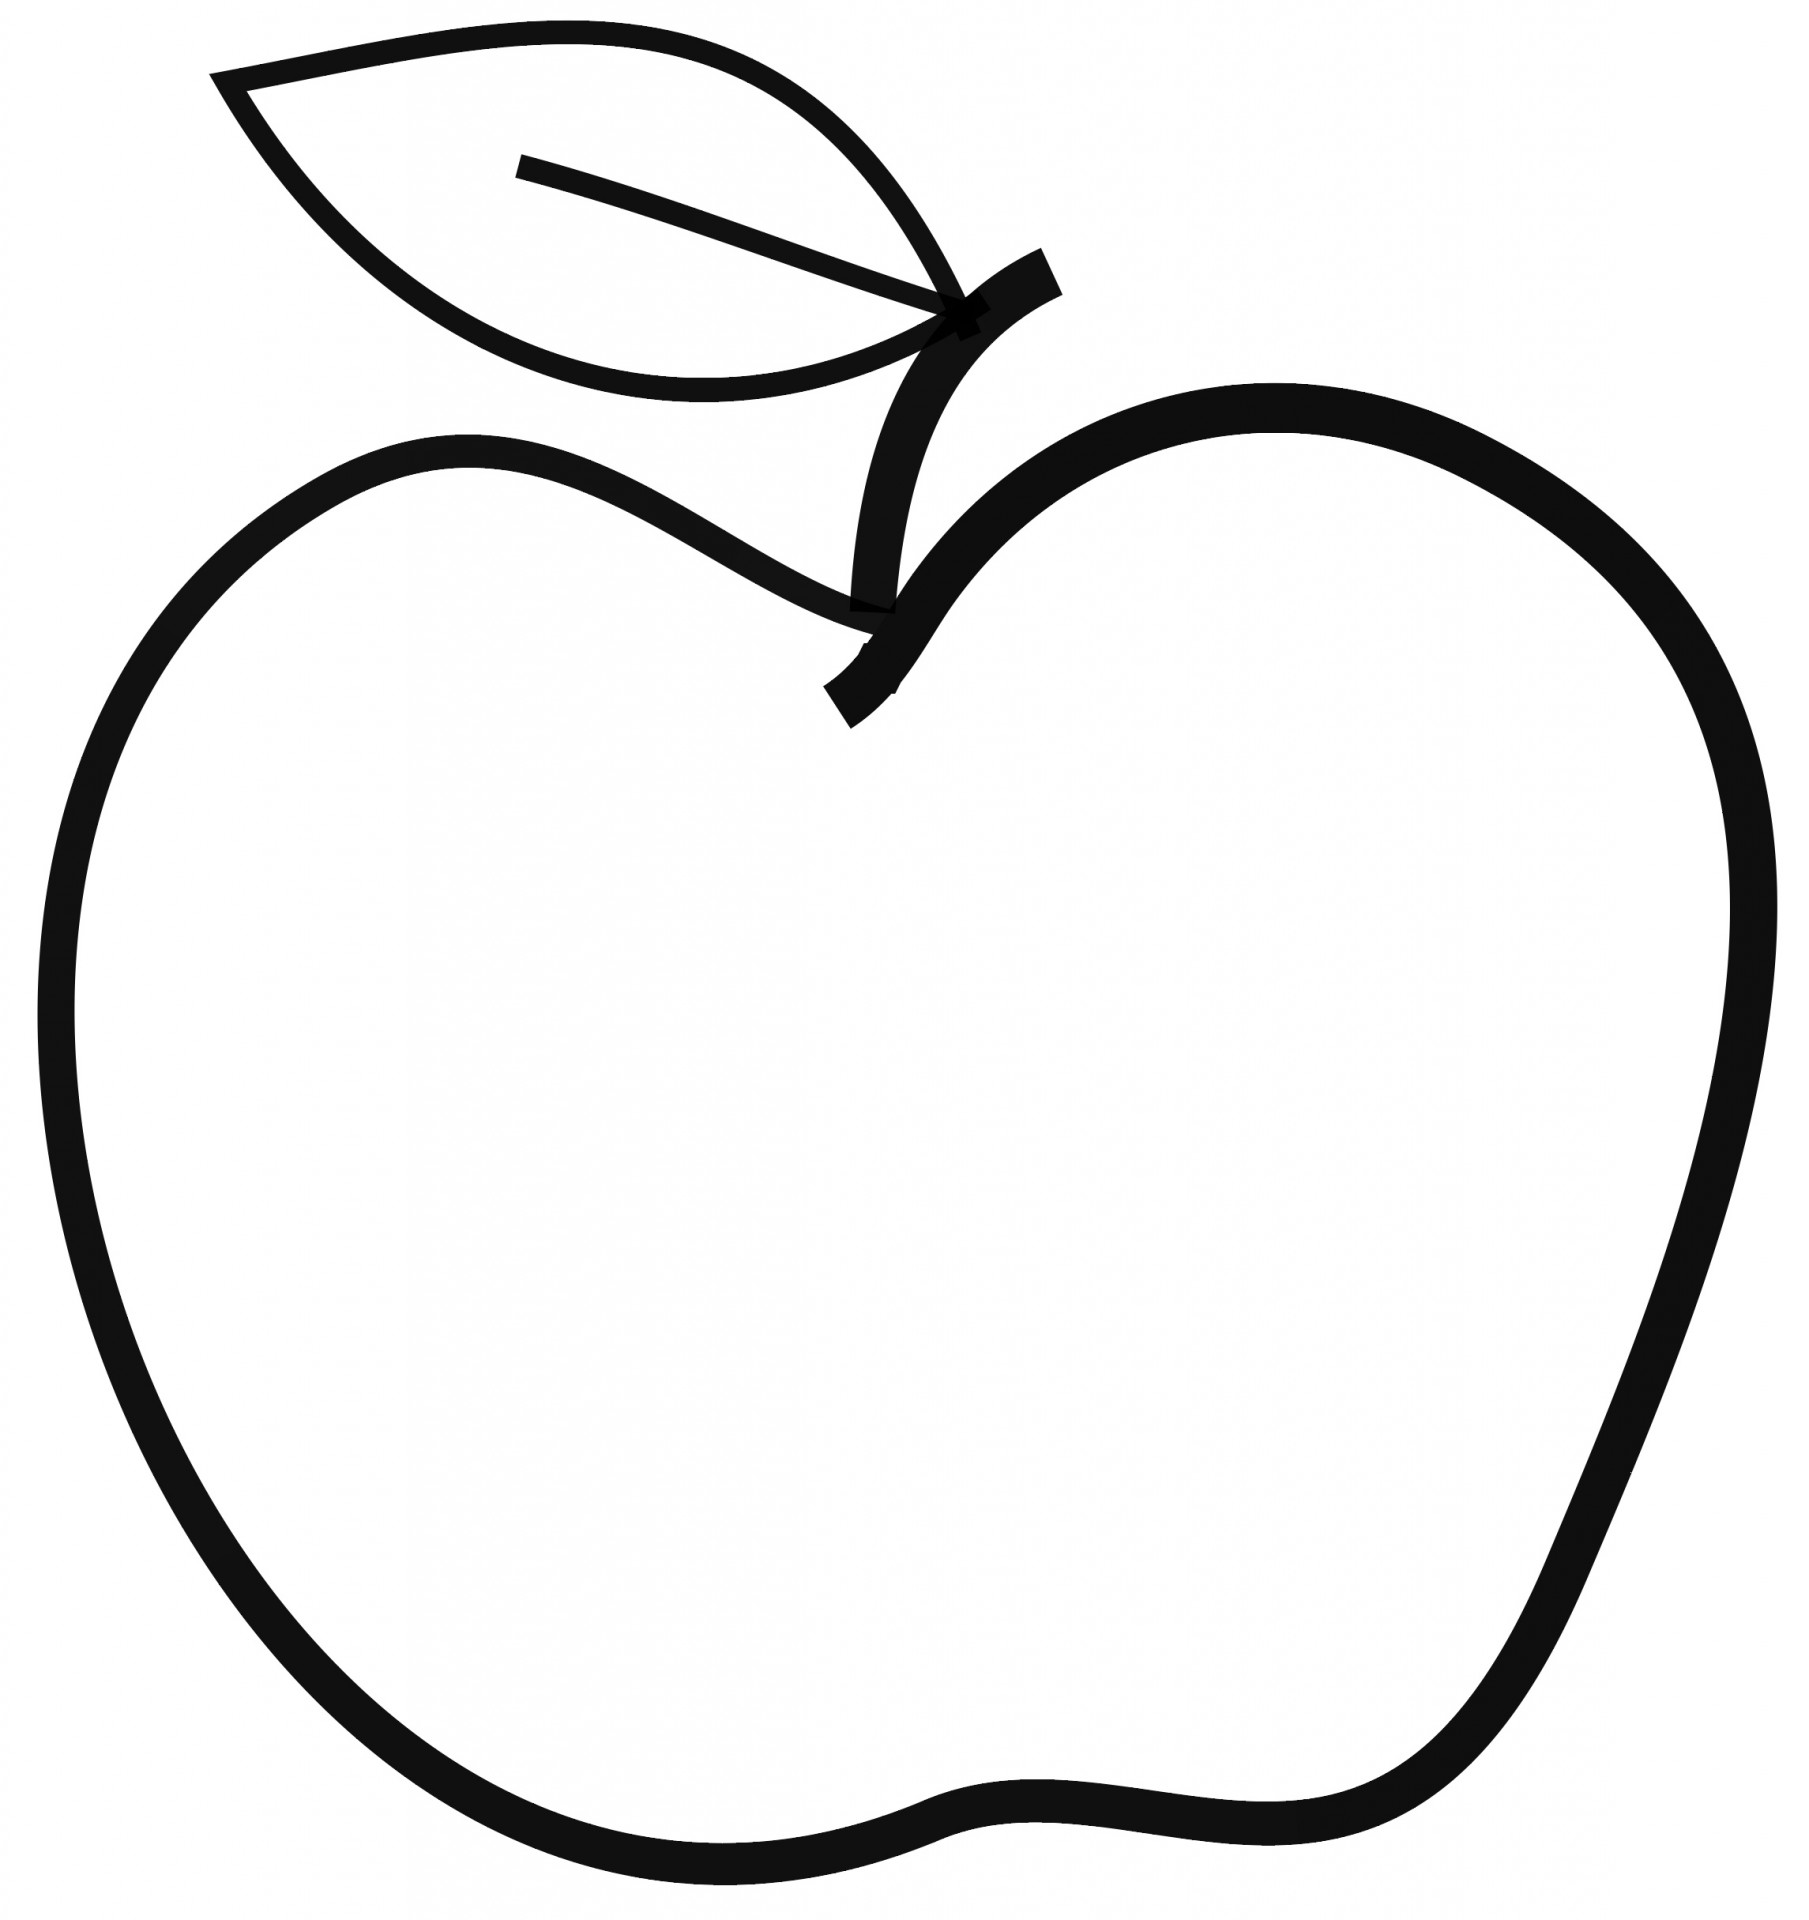 1809x1920 Apple Black And White Apple Clip Art Black And White 2